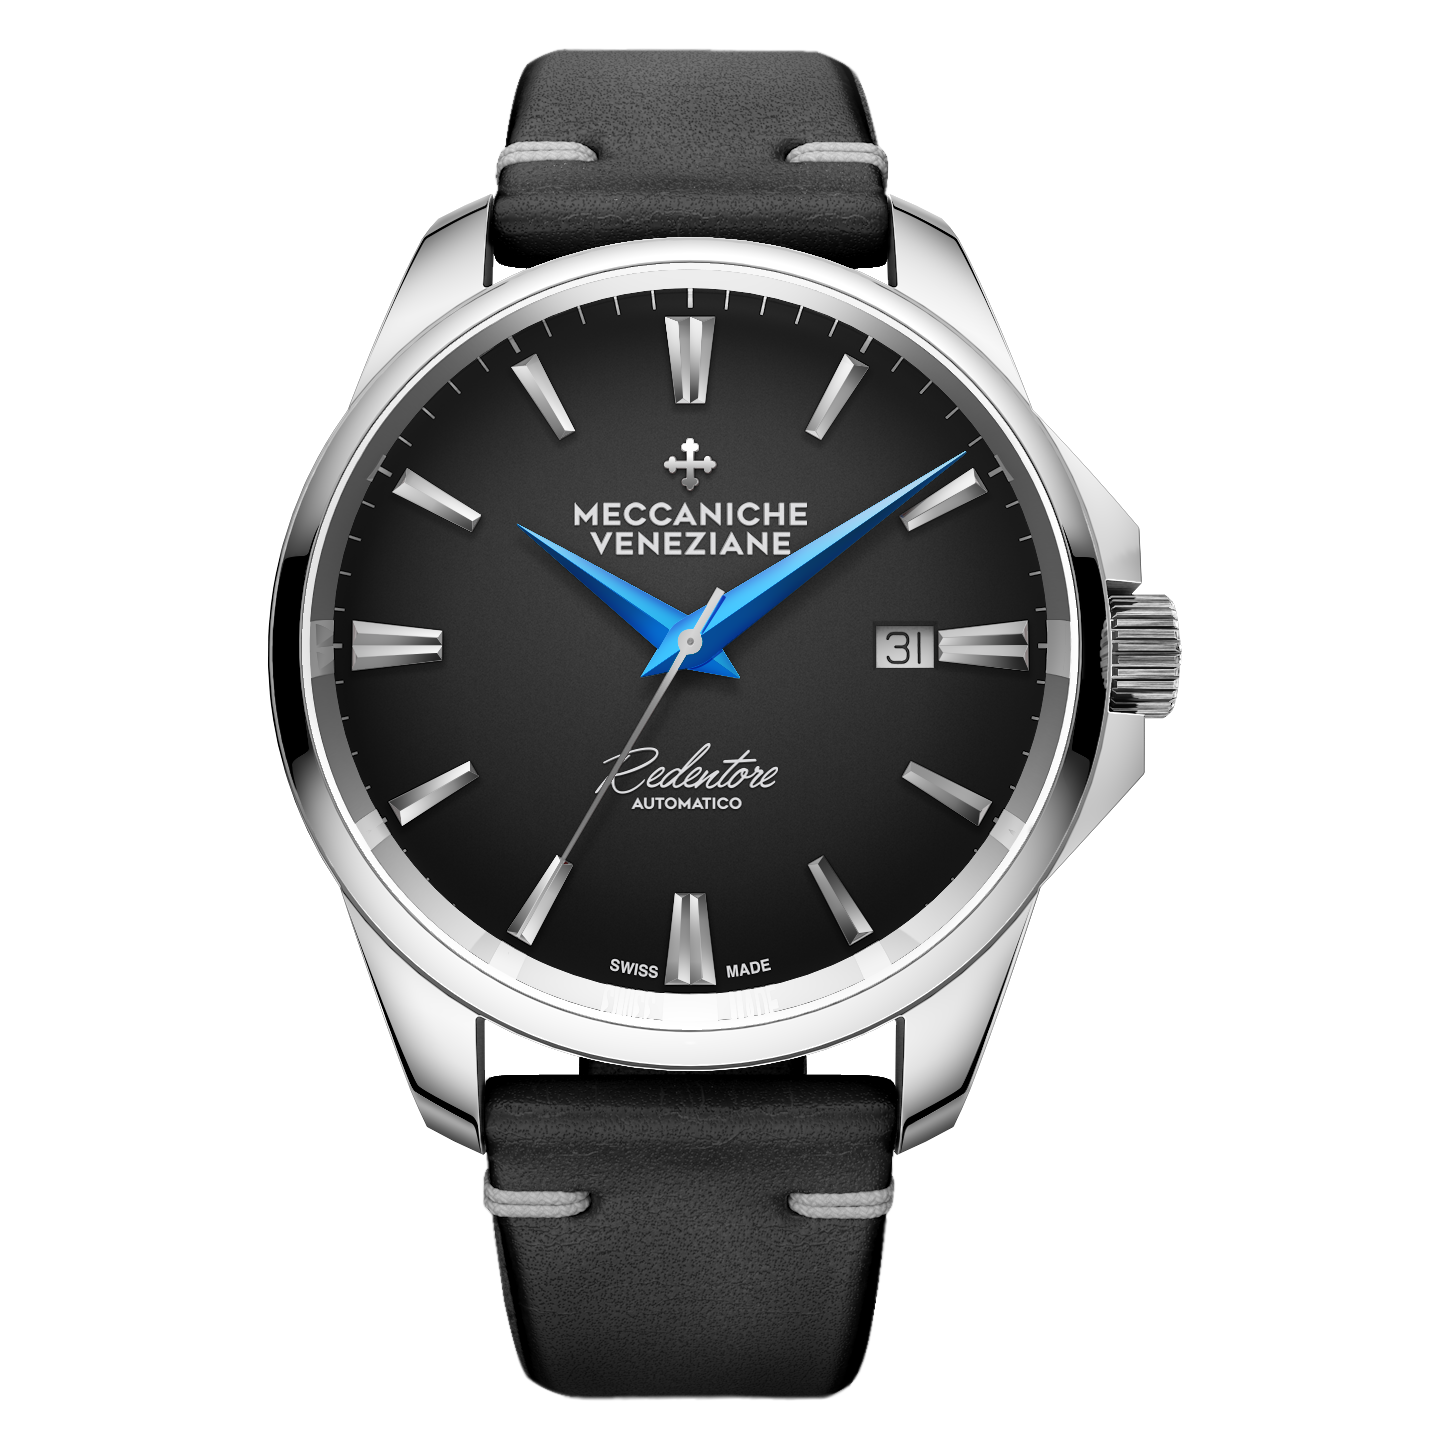 Meccaniche Veneziane black dial blue hands Rendentore automatic on leather strap -1201009